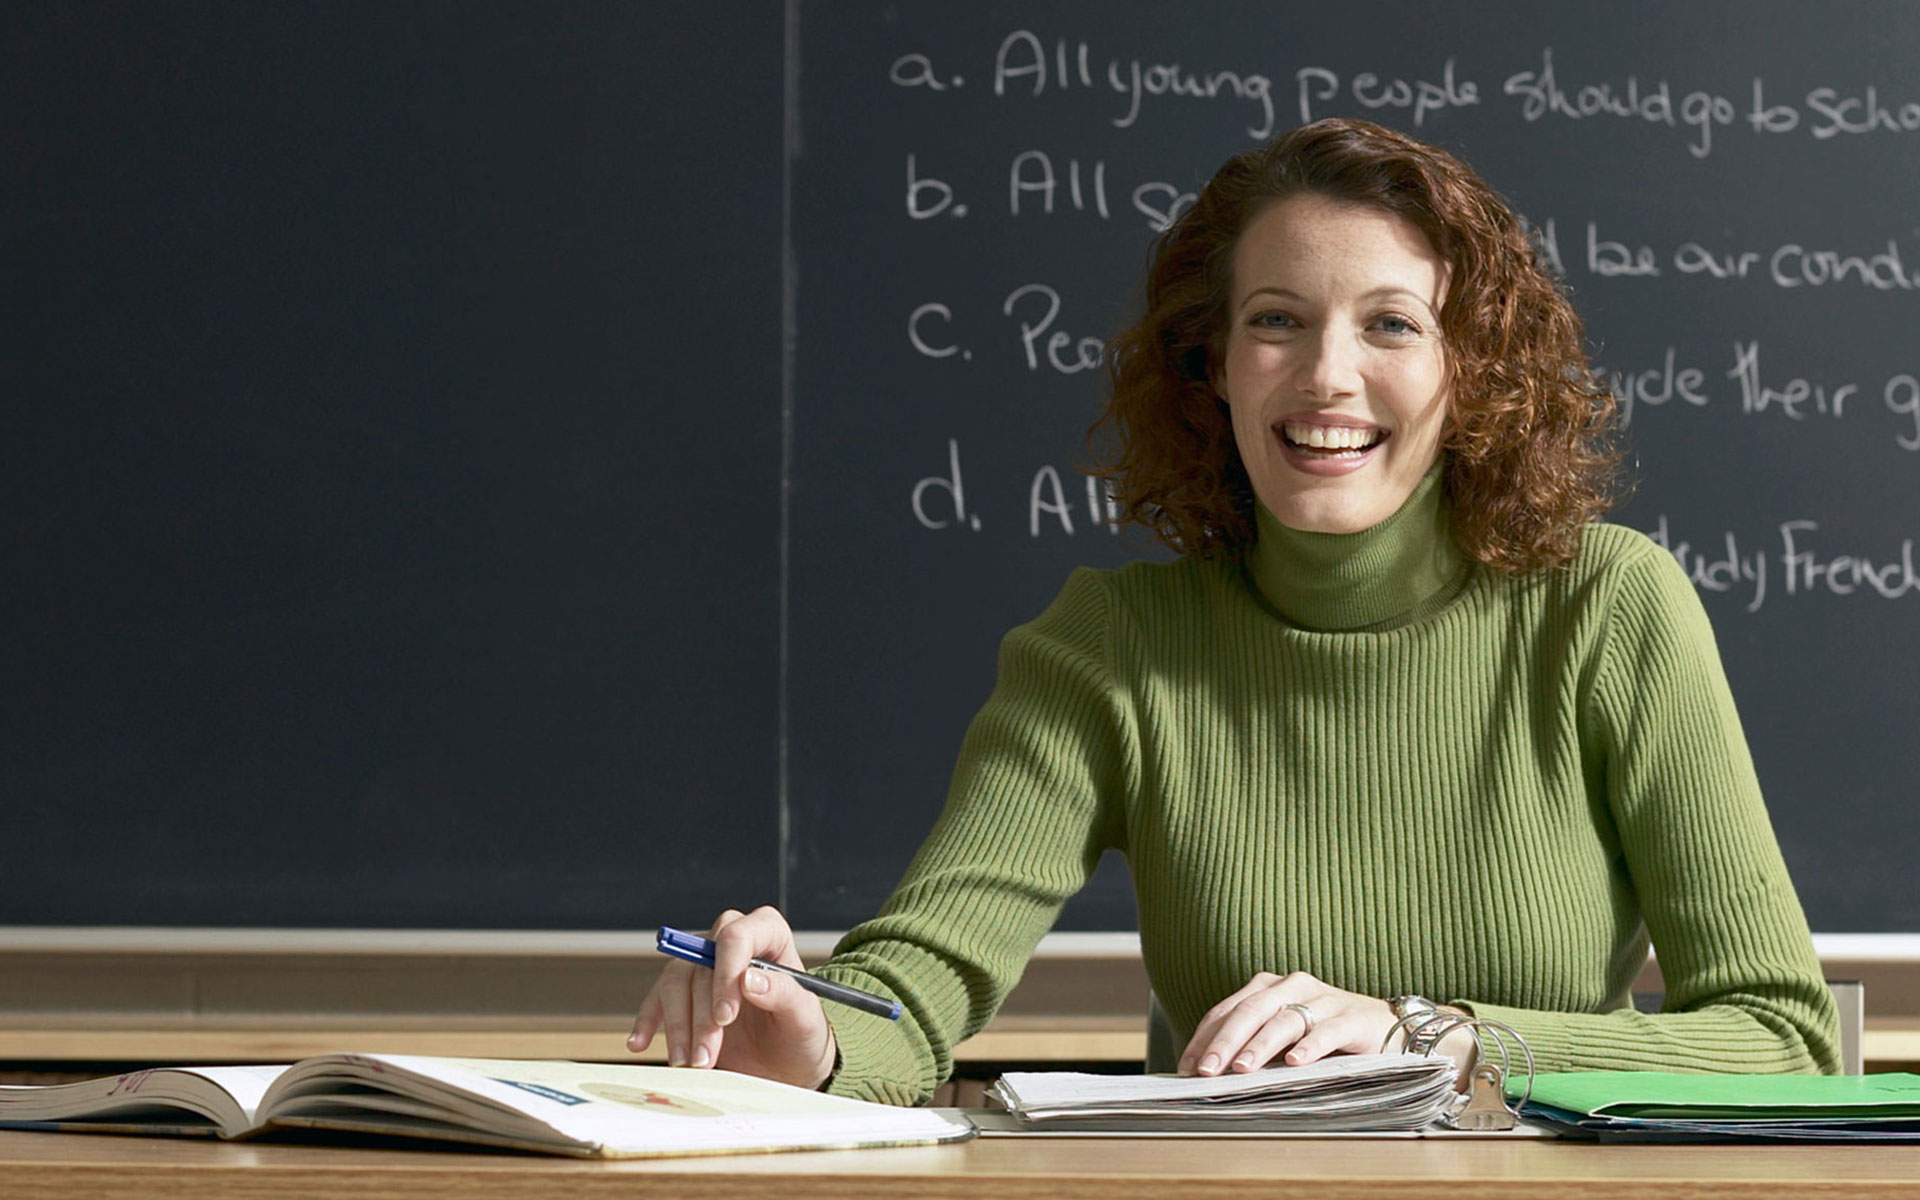 7-heartwarming-student-stories-about-modern-teachers-4.jpg